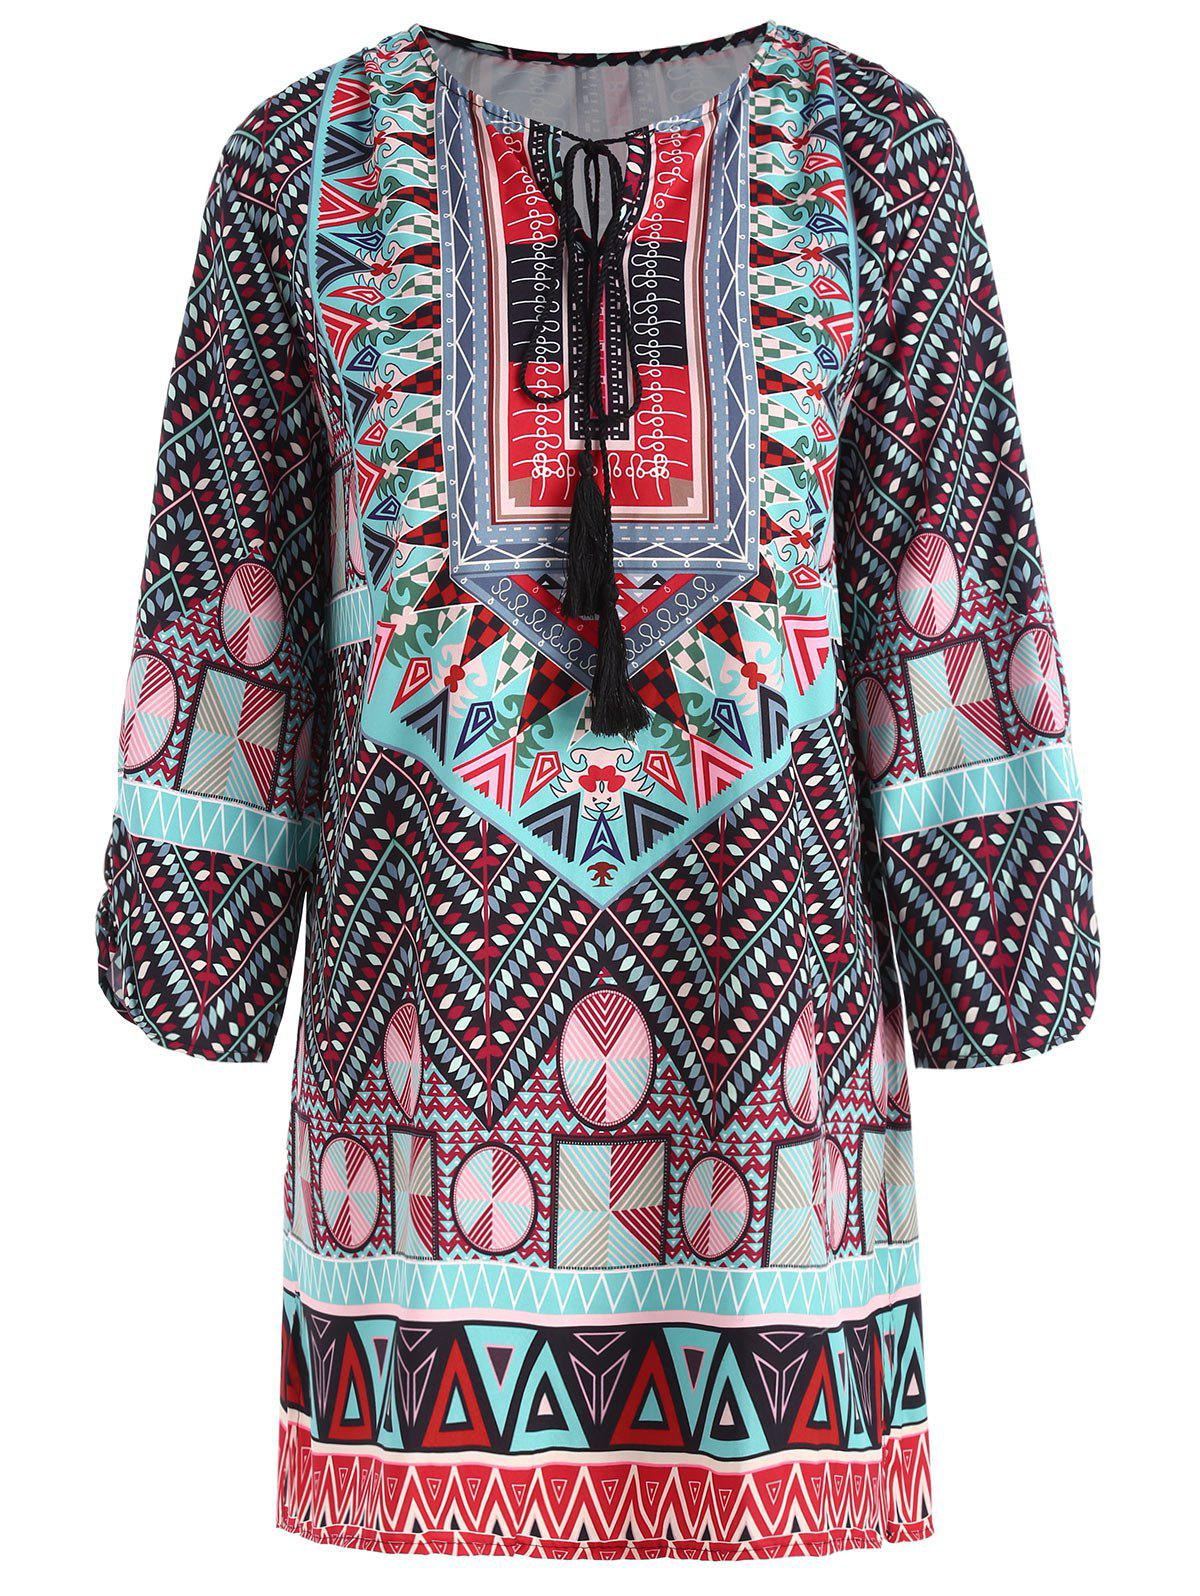 Plus Size Keyhole Tassel Tribe Print BlouseWOMEN<br><br>Size: 5XL; Color: COLORMIX; Material: Polyester; Shirt Length: Long; Sleeve Length: Three Quarter; Collar: Keyhole Neck; Style: Casual; Season: Fall; Embellishment: Tassel; Pattern Type: Print; Weight: 0.2050kg; Package Contents: 1 x Blouse;